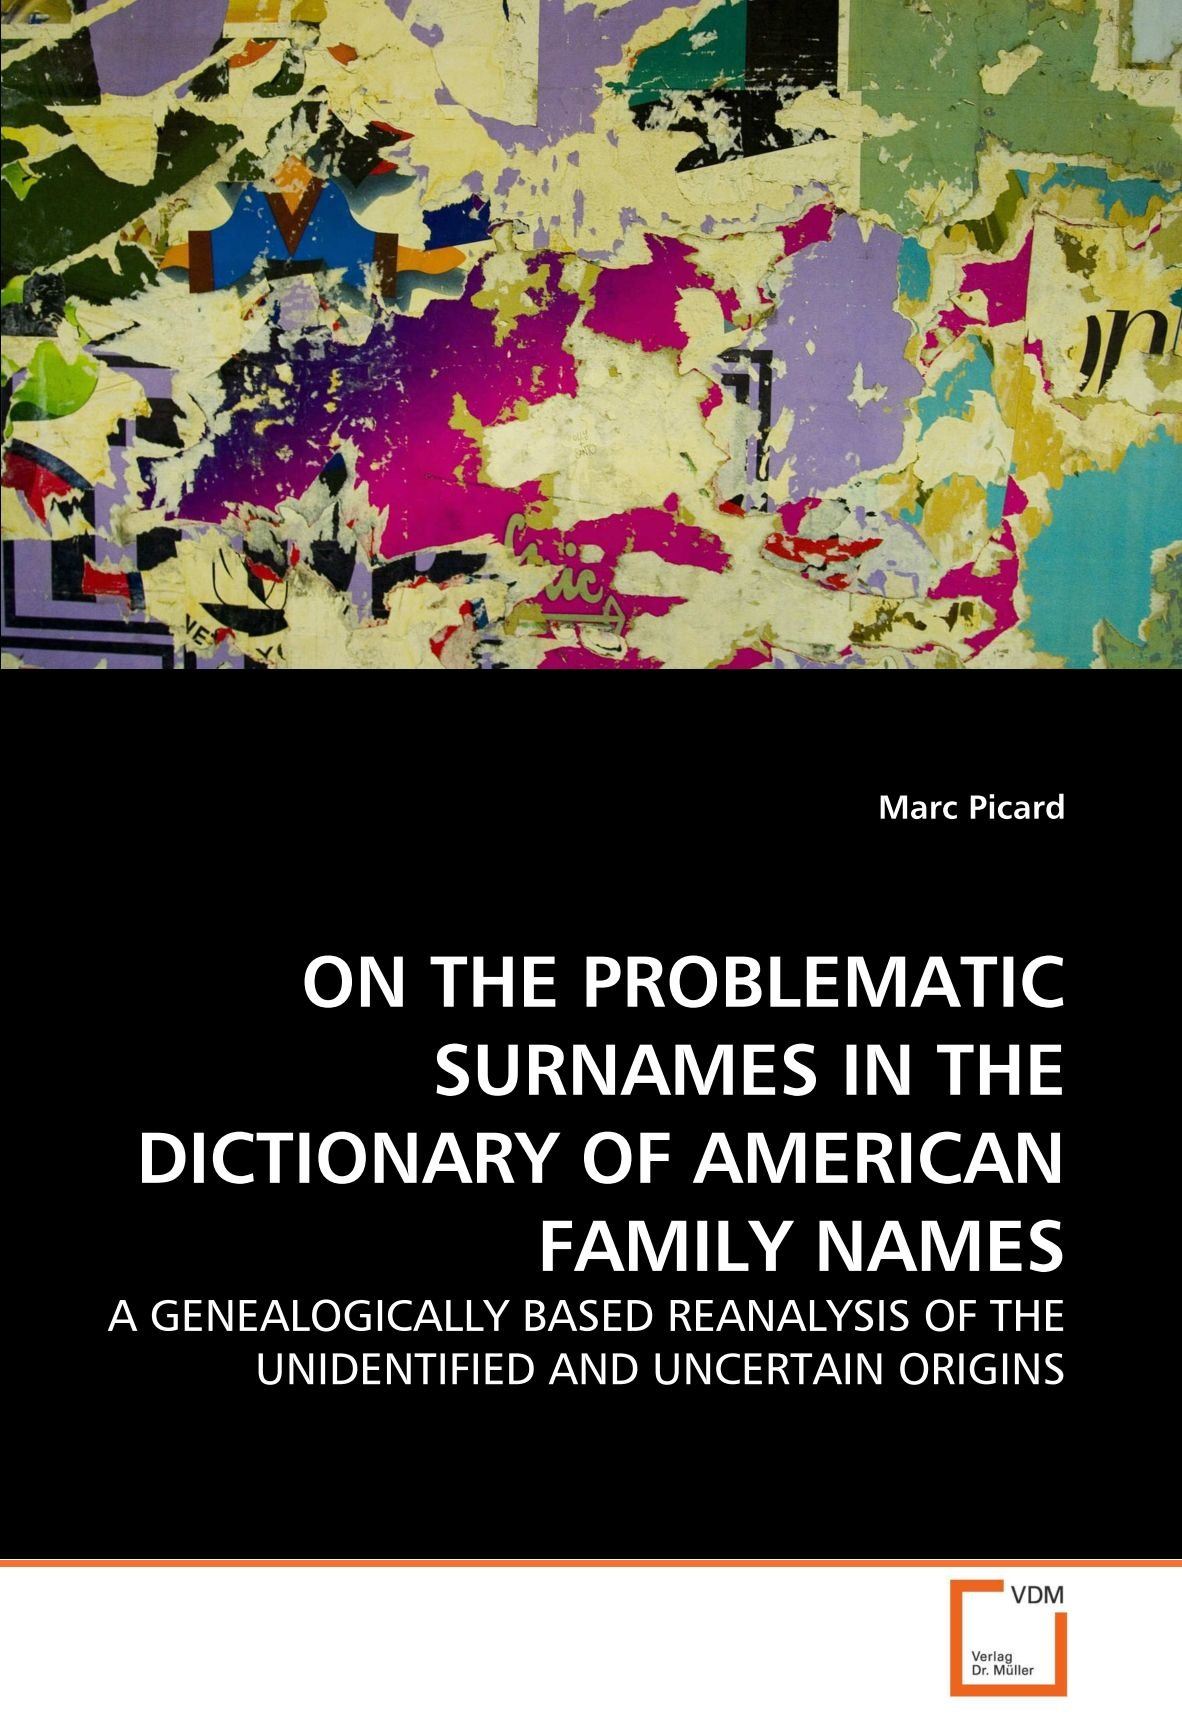 Buy On the Problematic Surnames in the Dictionary of American Family Names  Book Online at Low Prices in India | On the Problematic Surnames in the ...